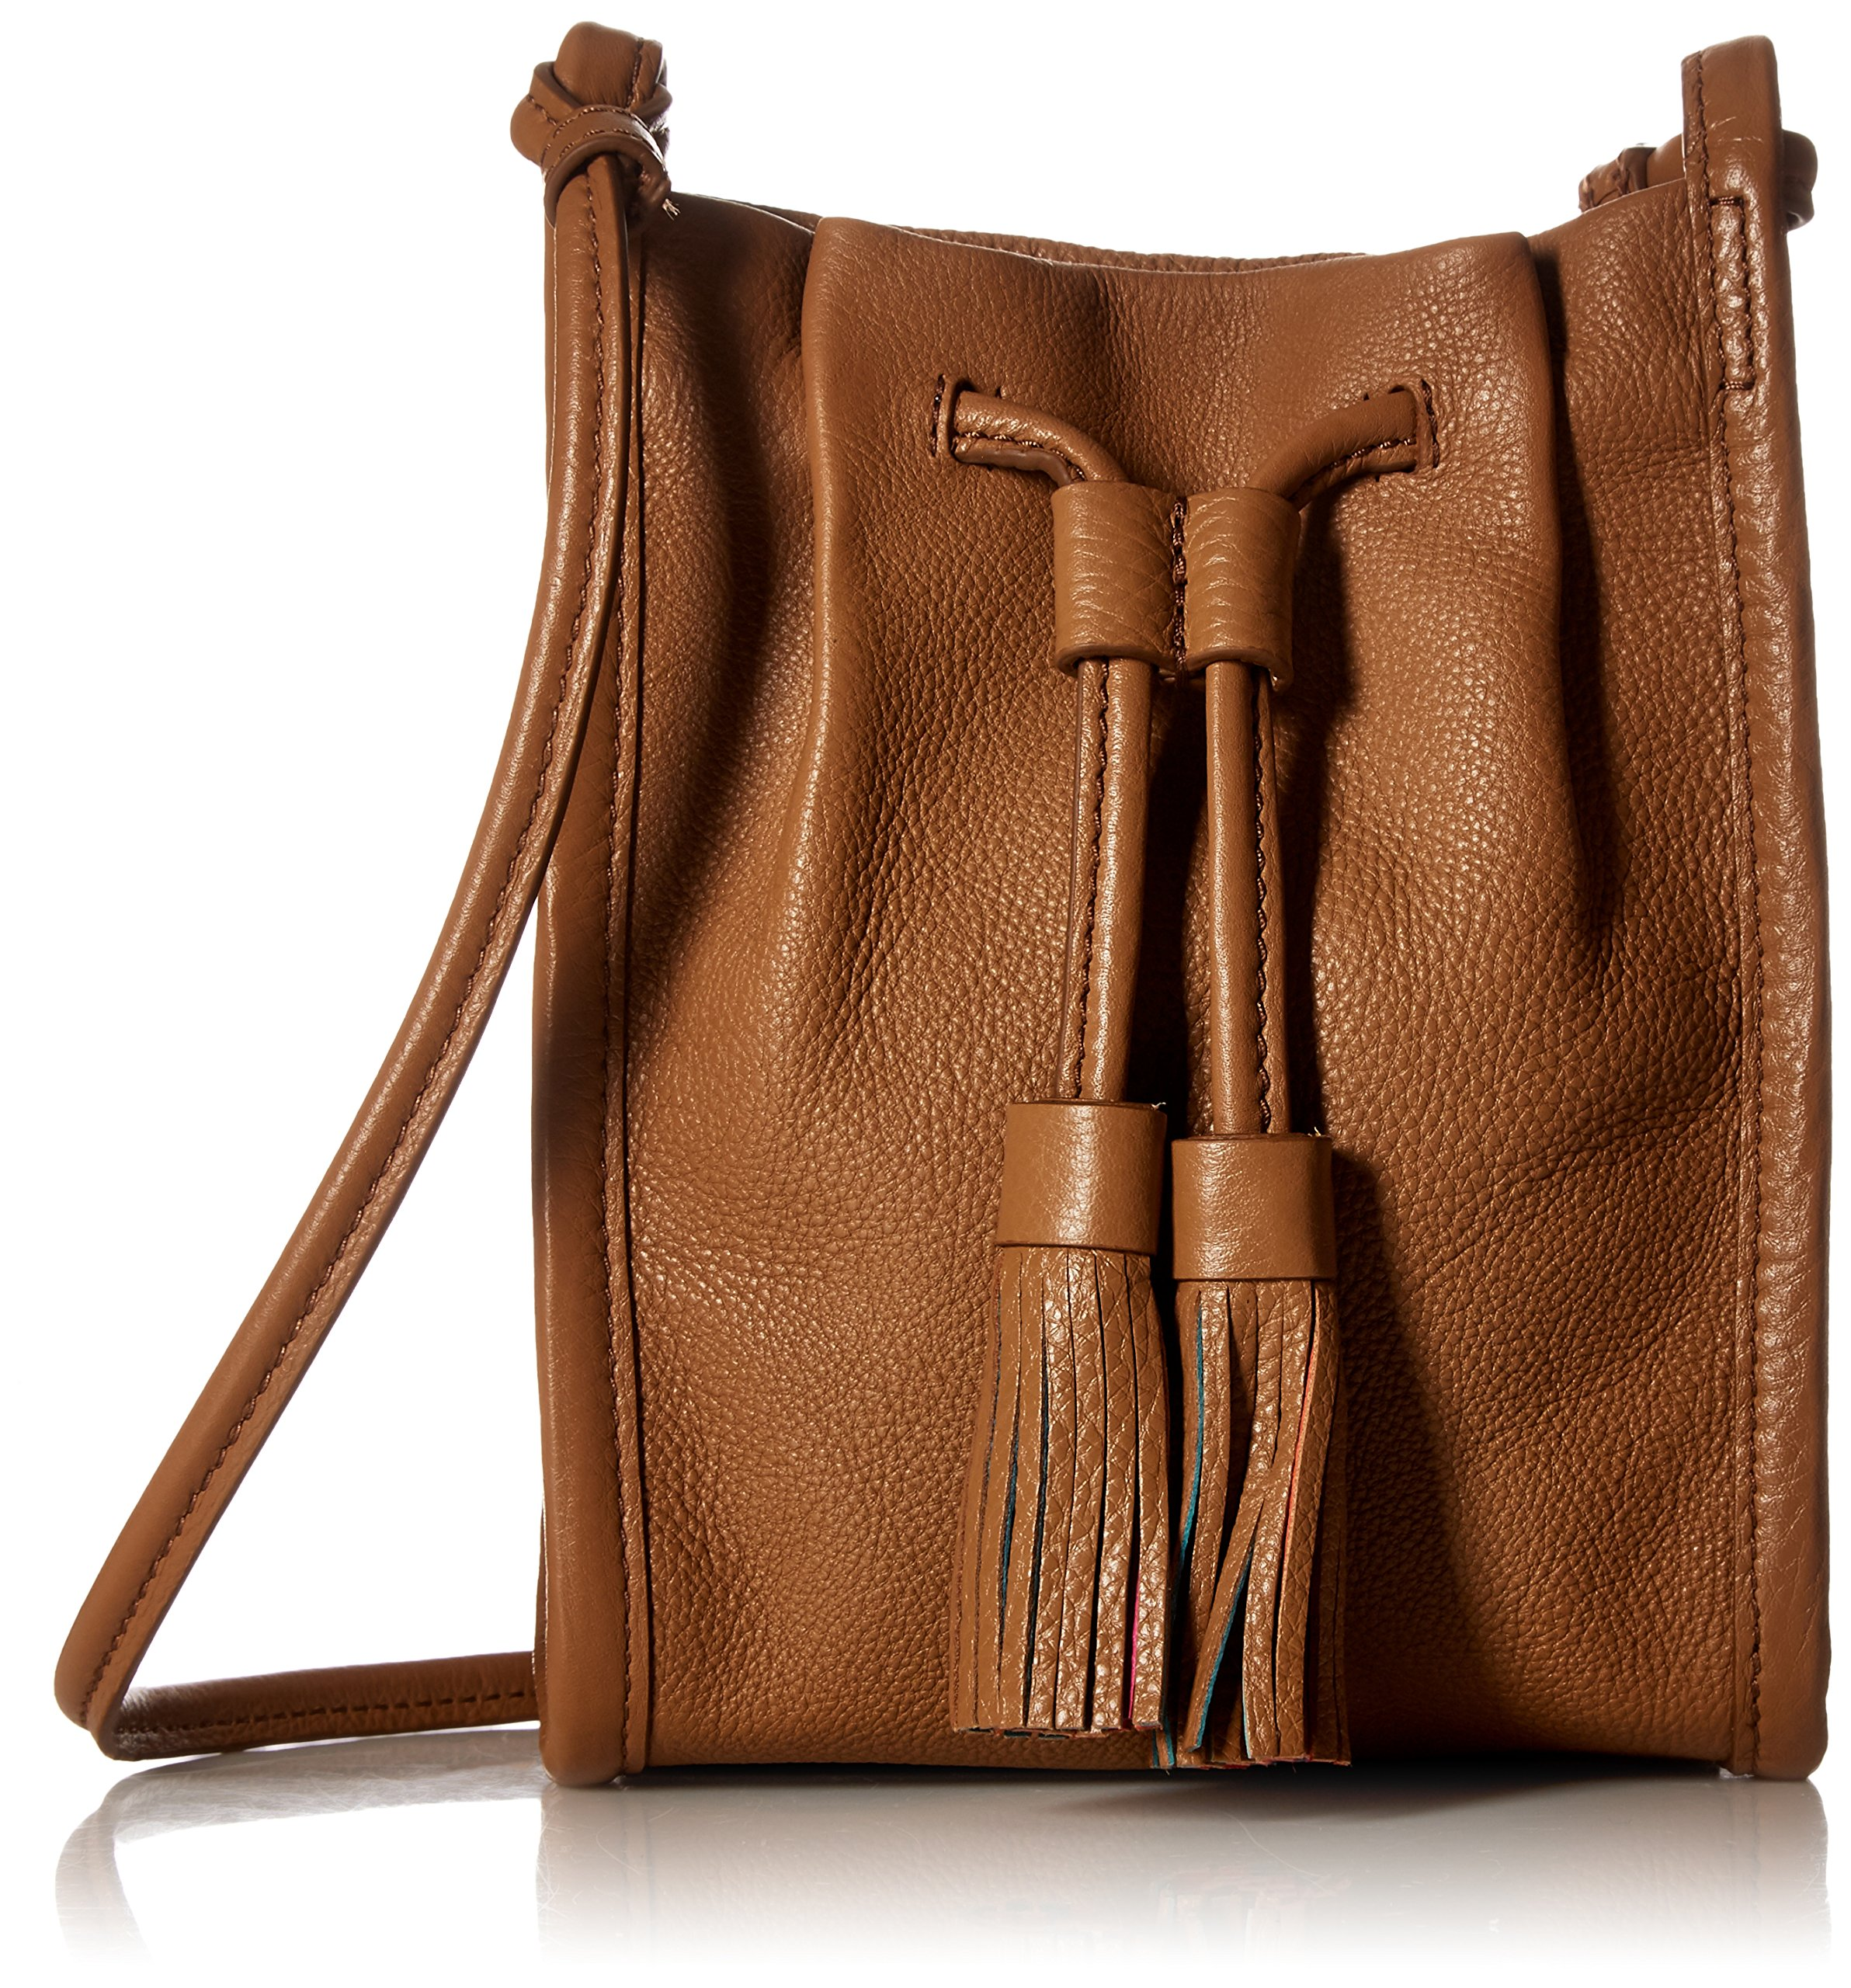 Fossil Claire Phone Bag, Tan